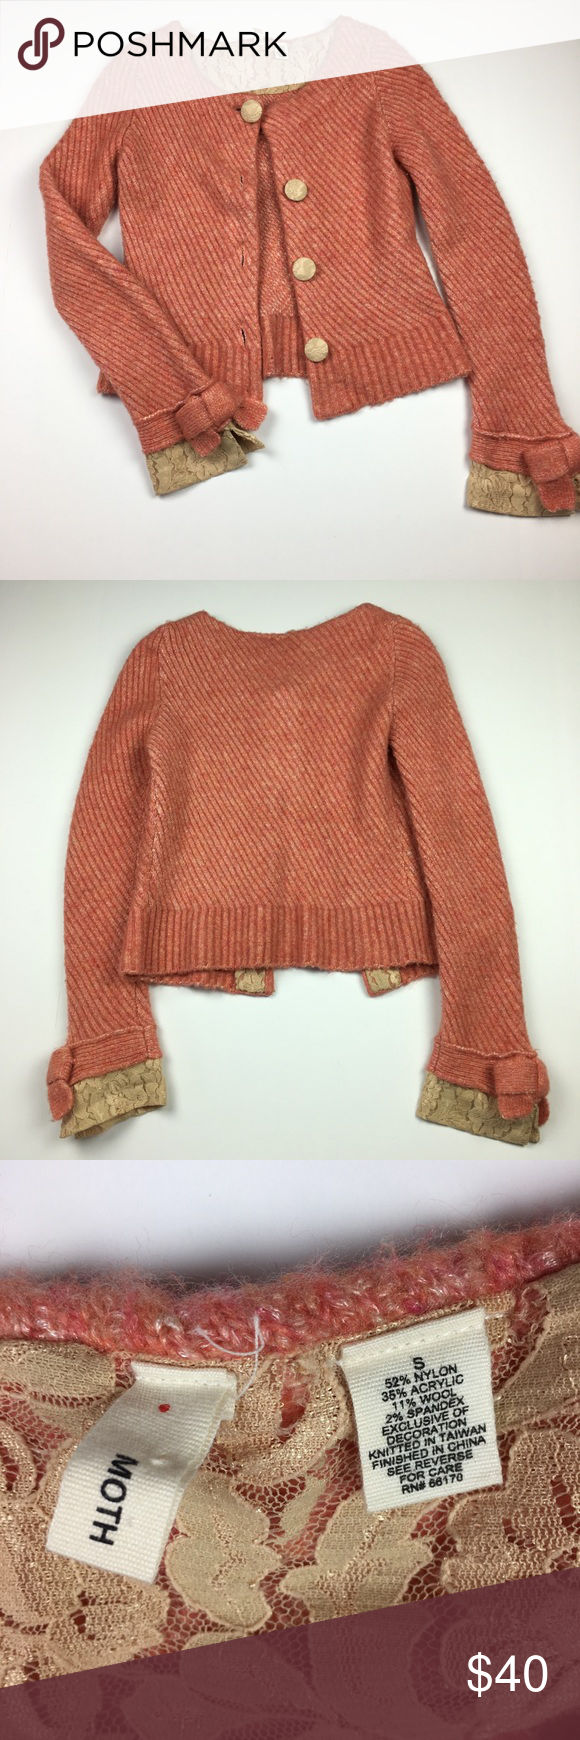 Anthropologie Moth Lace Trim Cardigan Sweater Chest measures